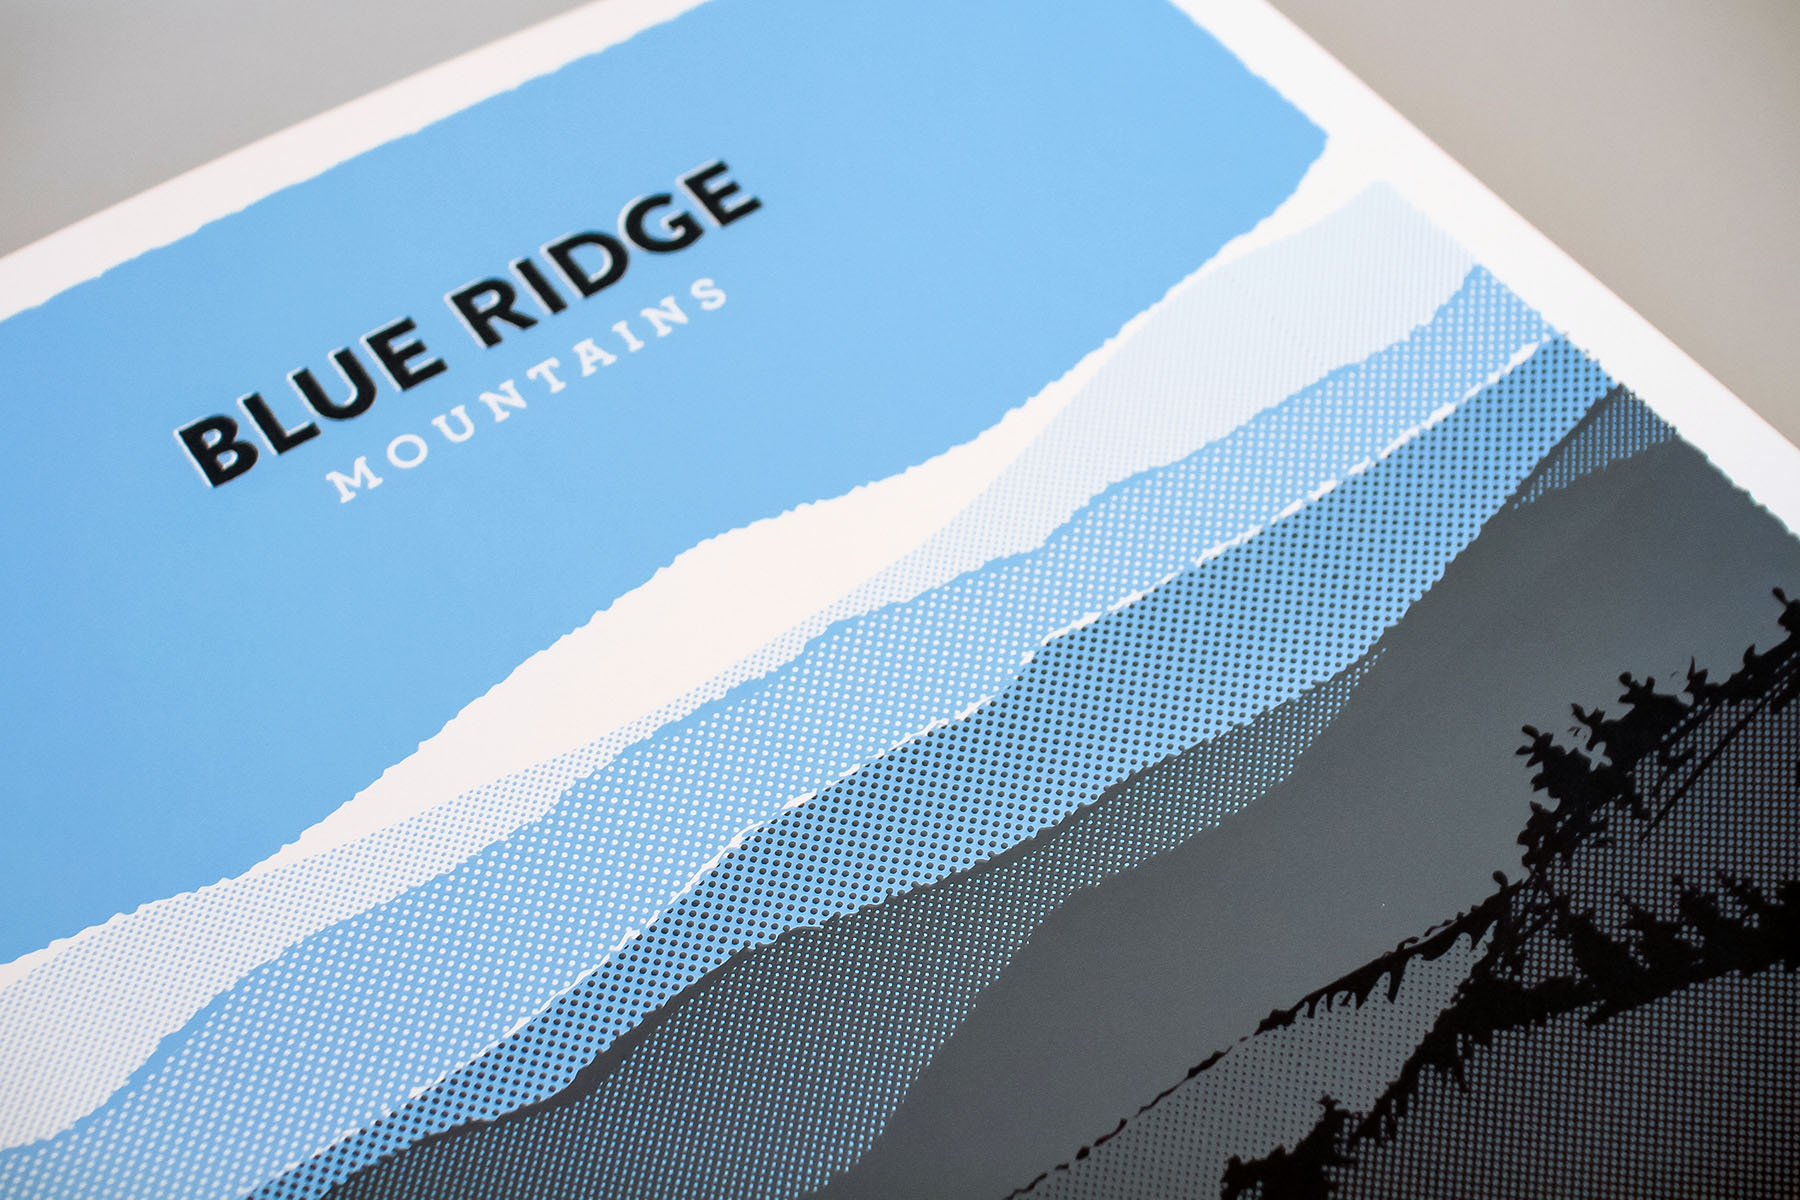 The blue ridge mountains poster is silk screen-printed in three spot pantone colors on a textured white paper.